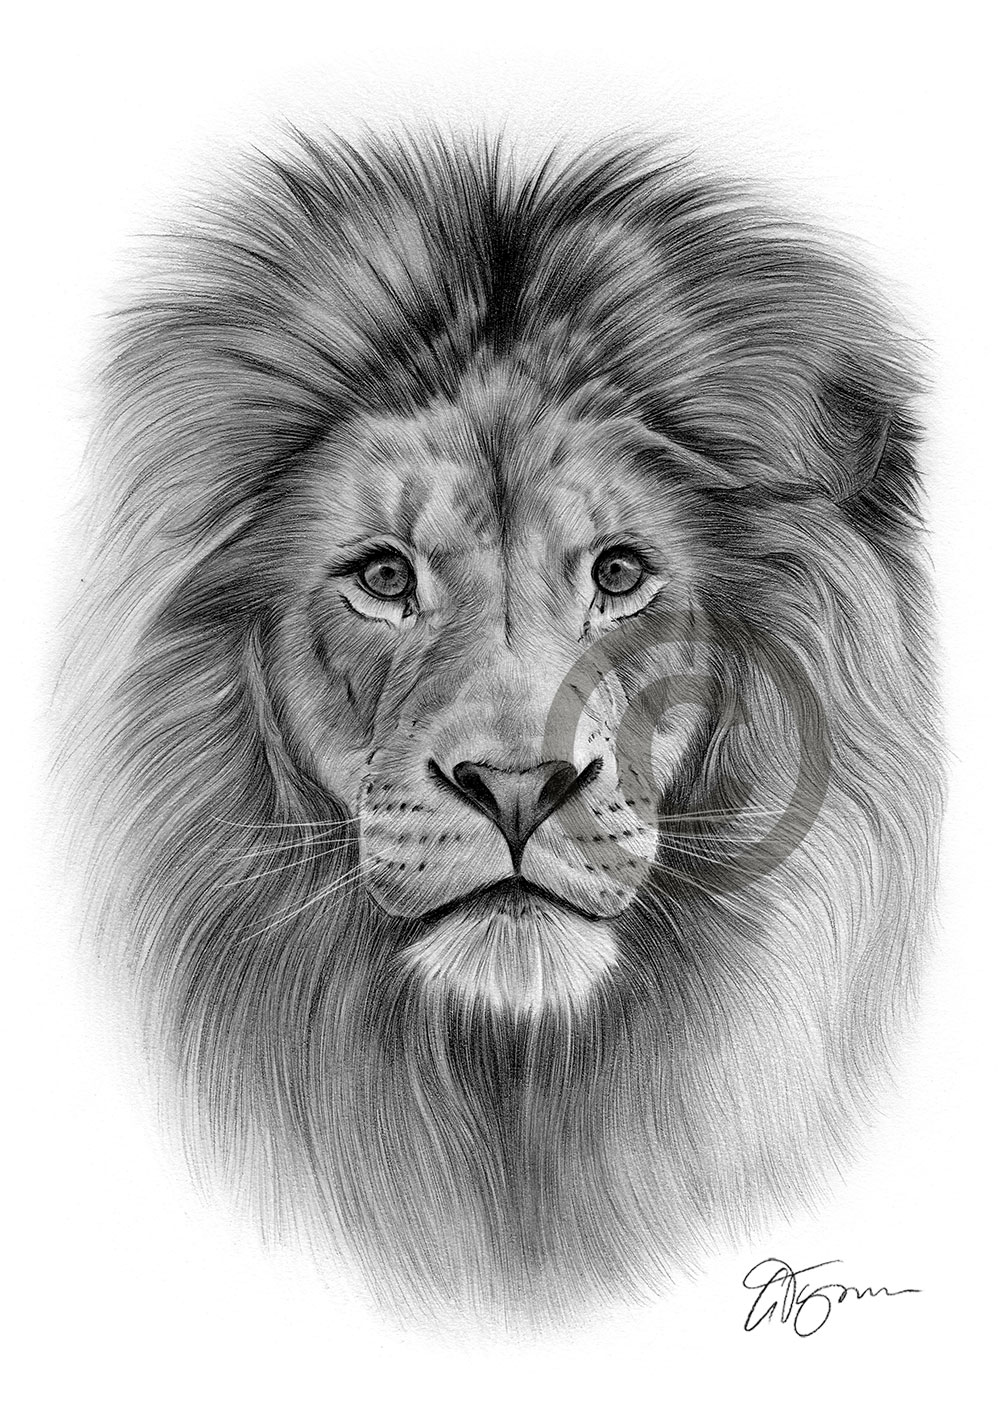 Pencil drawing of a African adult Lion by artist Gary Tymon